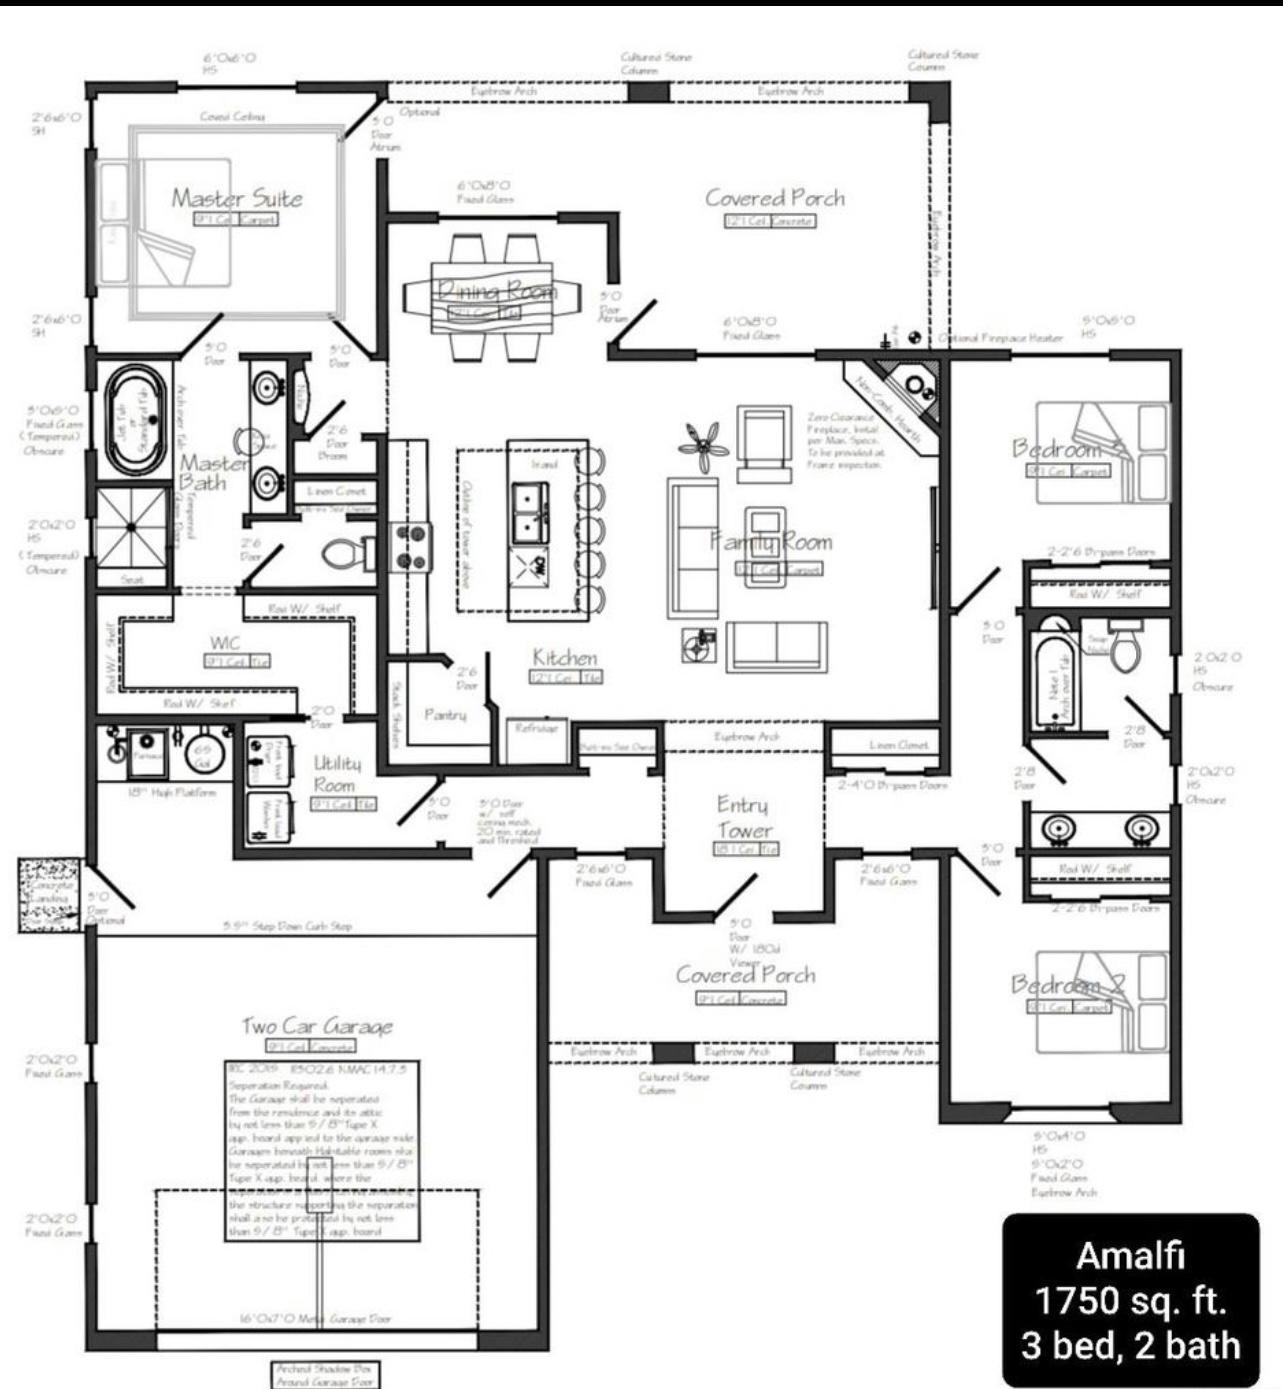 Buy this one today move in projected October 2021! This fantastic floor plan is an open with high ceilings, gas fireplace and covered patios. The kitchen features granite, designer cabinets, large pantry and appliances. The master suite features a gorgeous bath with double vanity, garden tub, walk-in shower and enormous closet with access to laundry. 2 car garage with side access. HOA does allow recreational trailers in back yards of property. This is a great floor plan in Los Lunas and is 25 minutes to downtown Albuquerque. Local restaurants, shops and entertainment in area 5-15 minutes. This home is ready for a owner! This is just one of several floor plans for the builder.